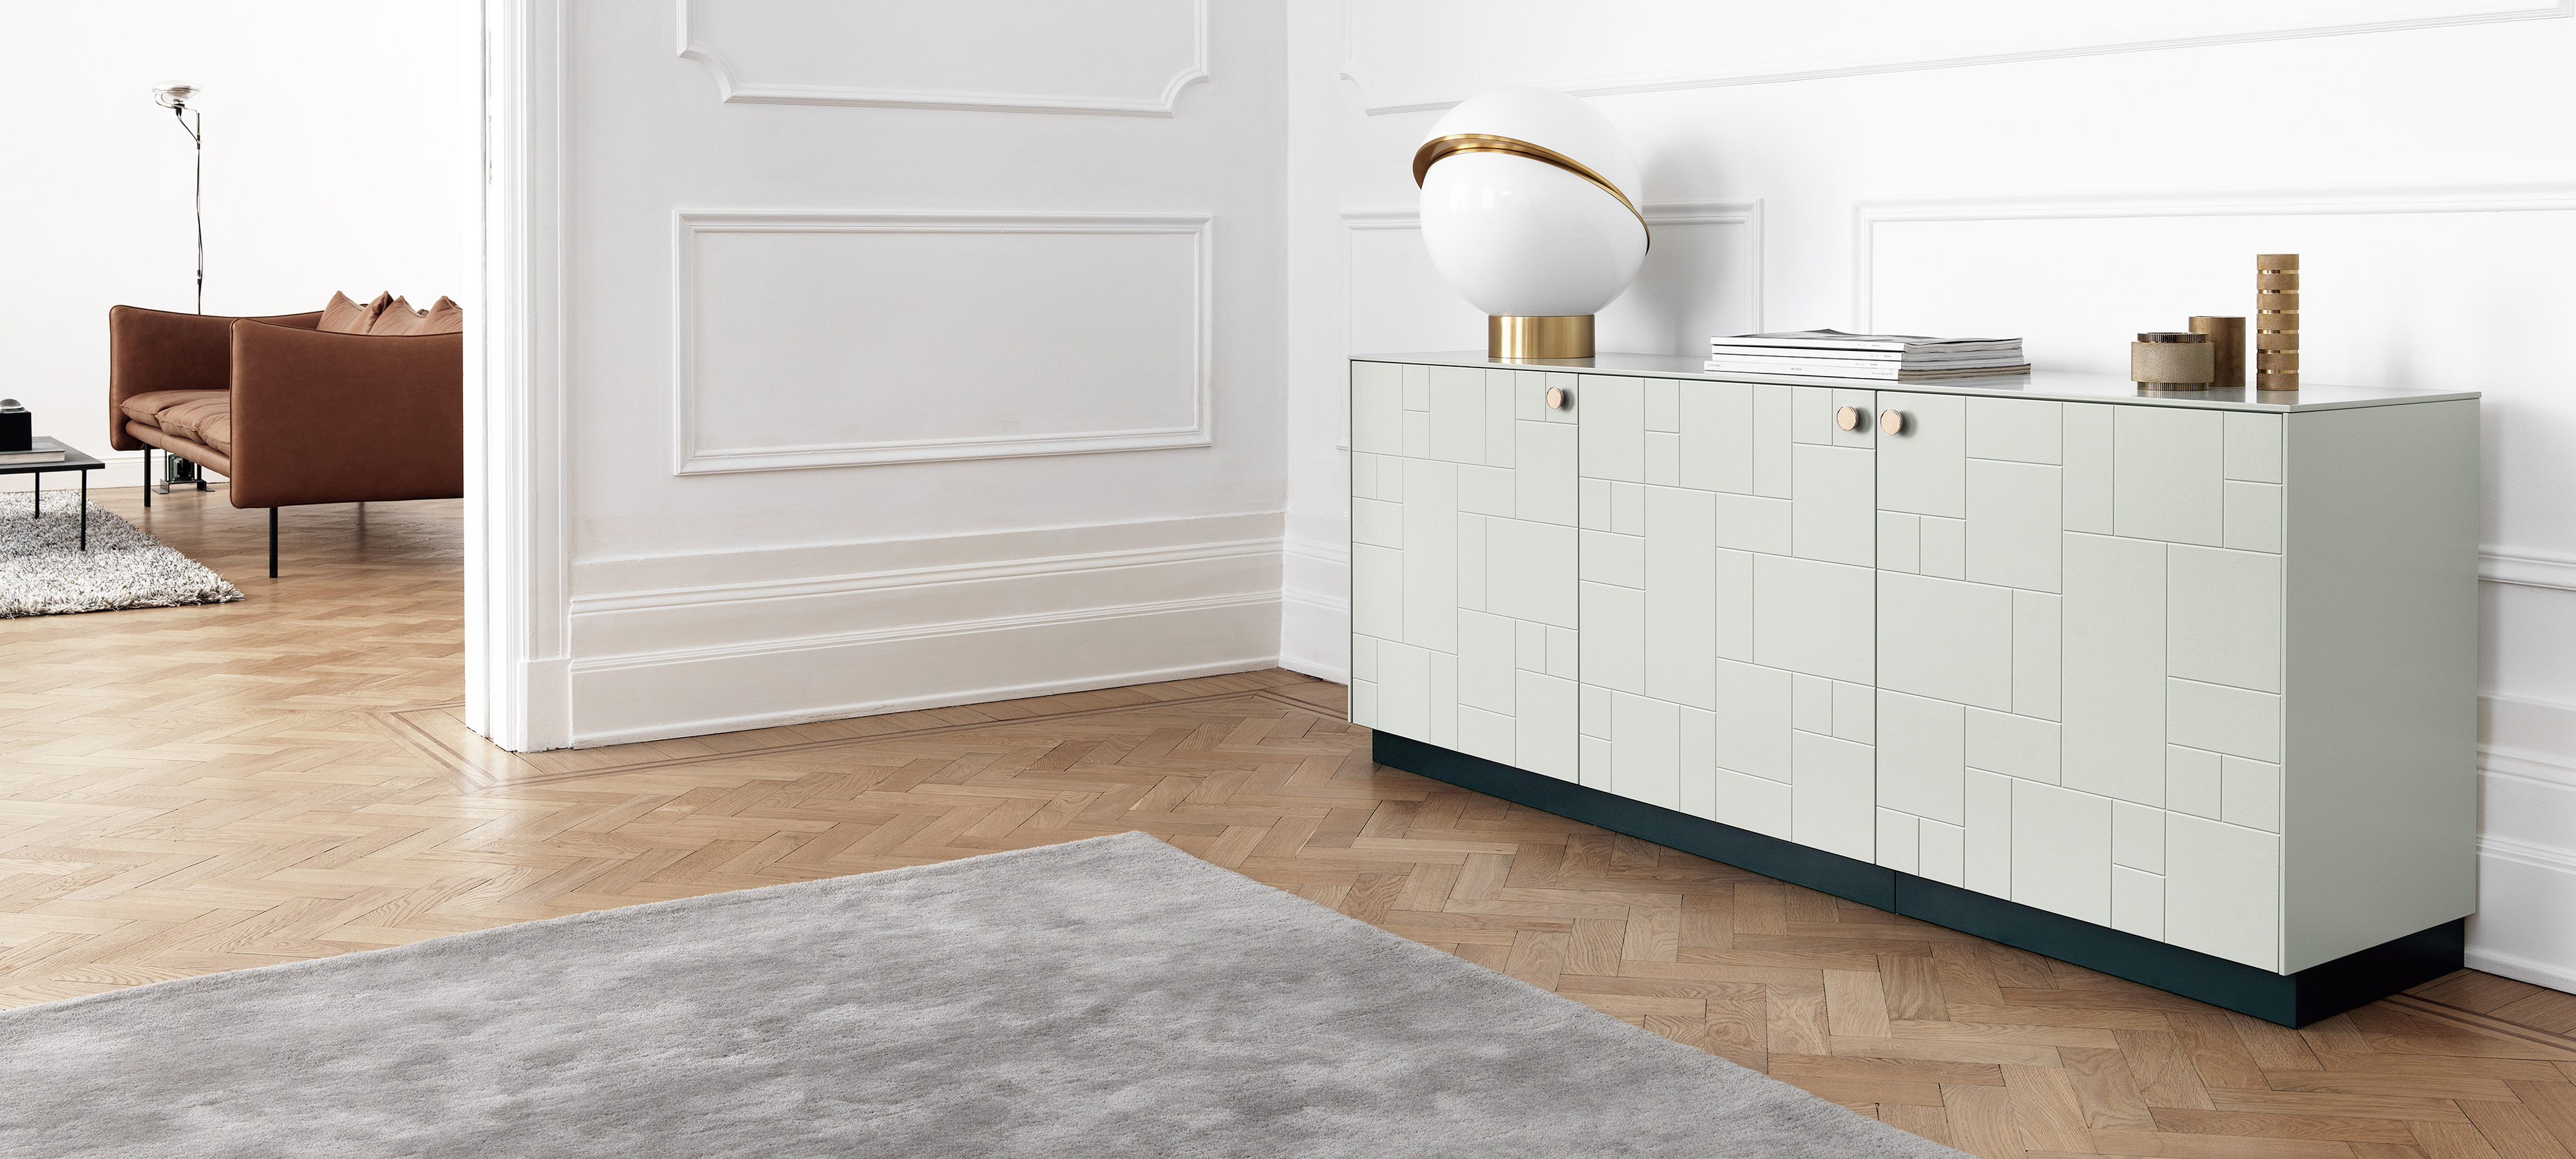 Interesting Create Unique Kitchens Bathrooms Or Storage Units By Adding Our  Fronts Handles And Legs To Ikeaus Frames With Ikea Kjkken Erfaringer